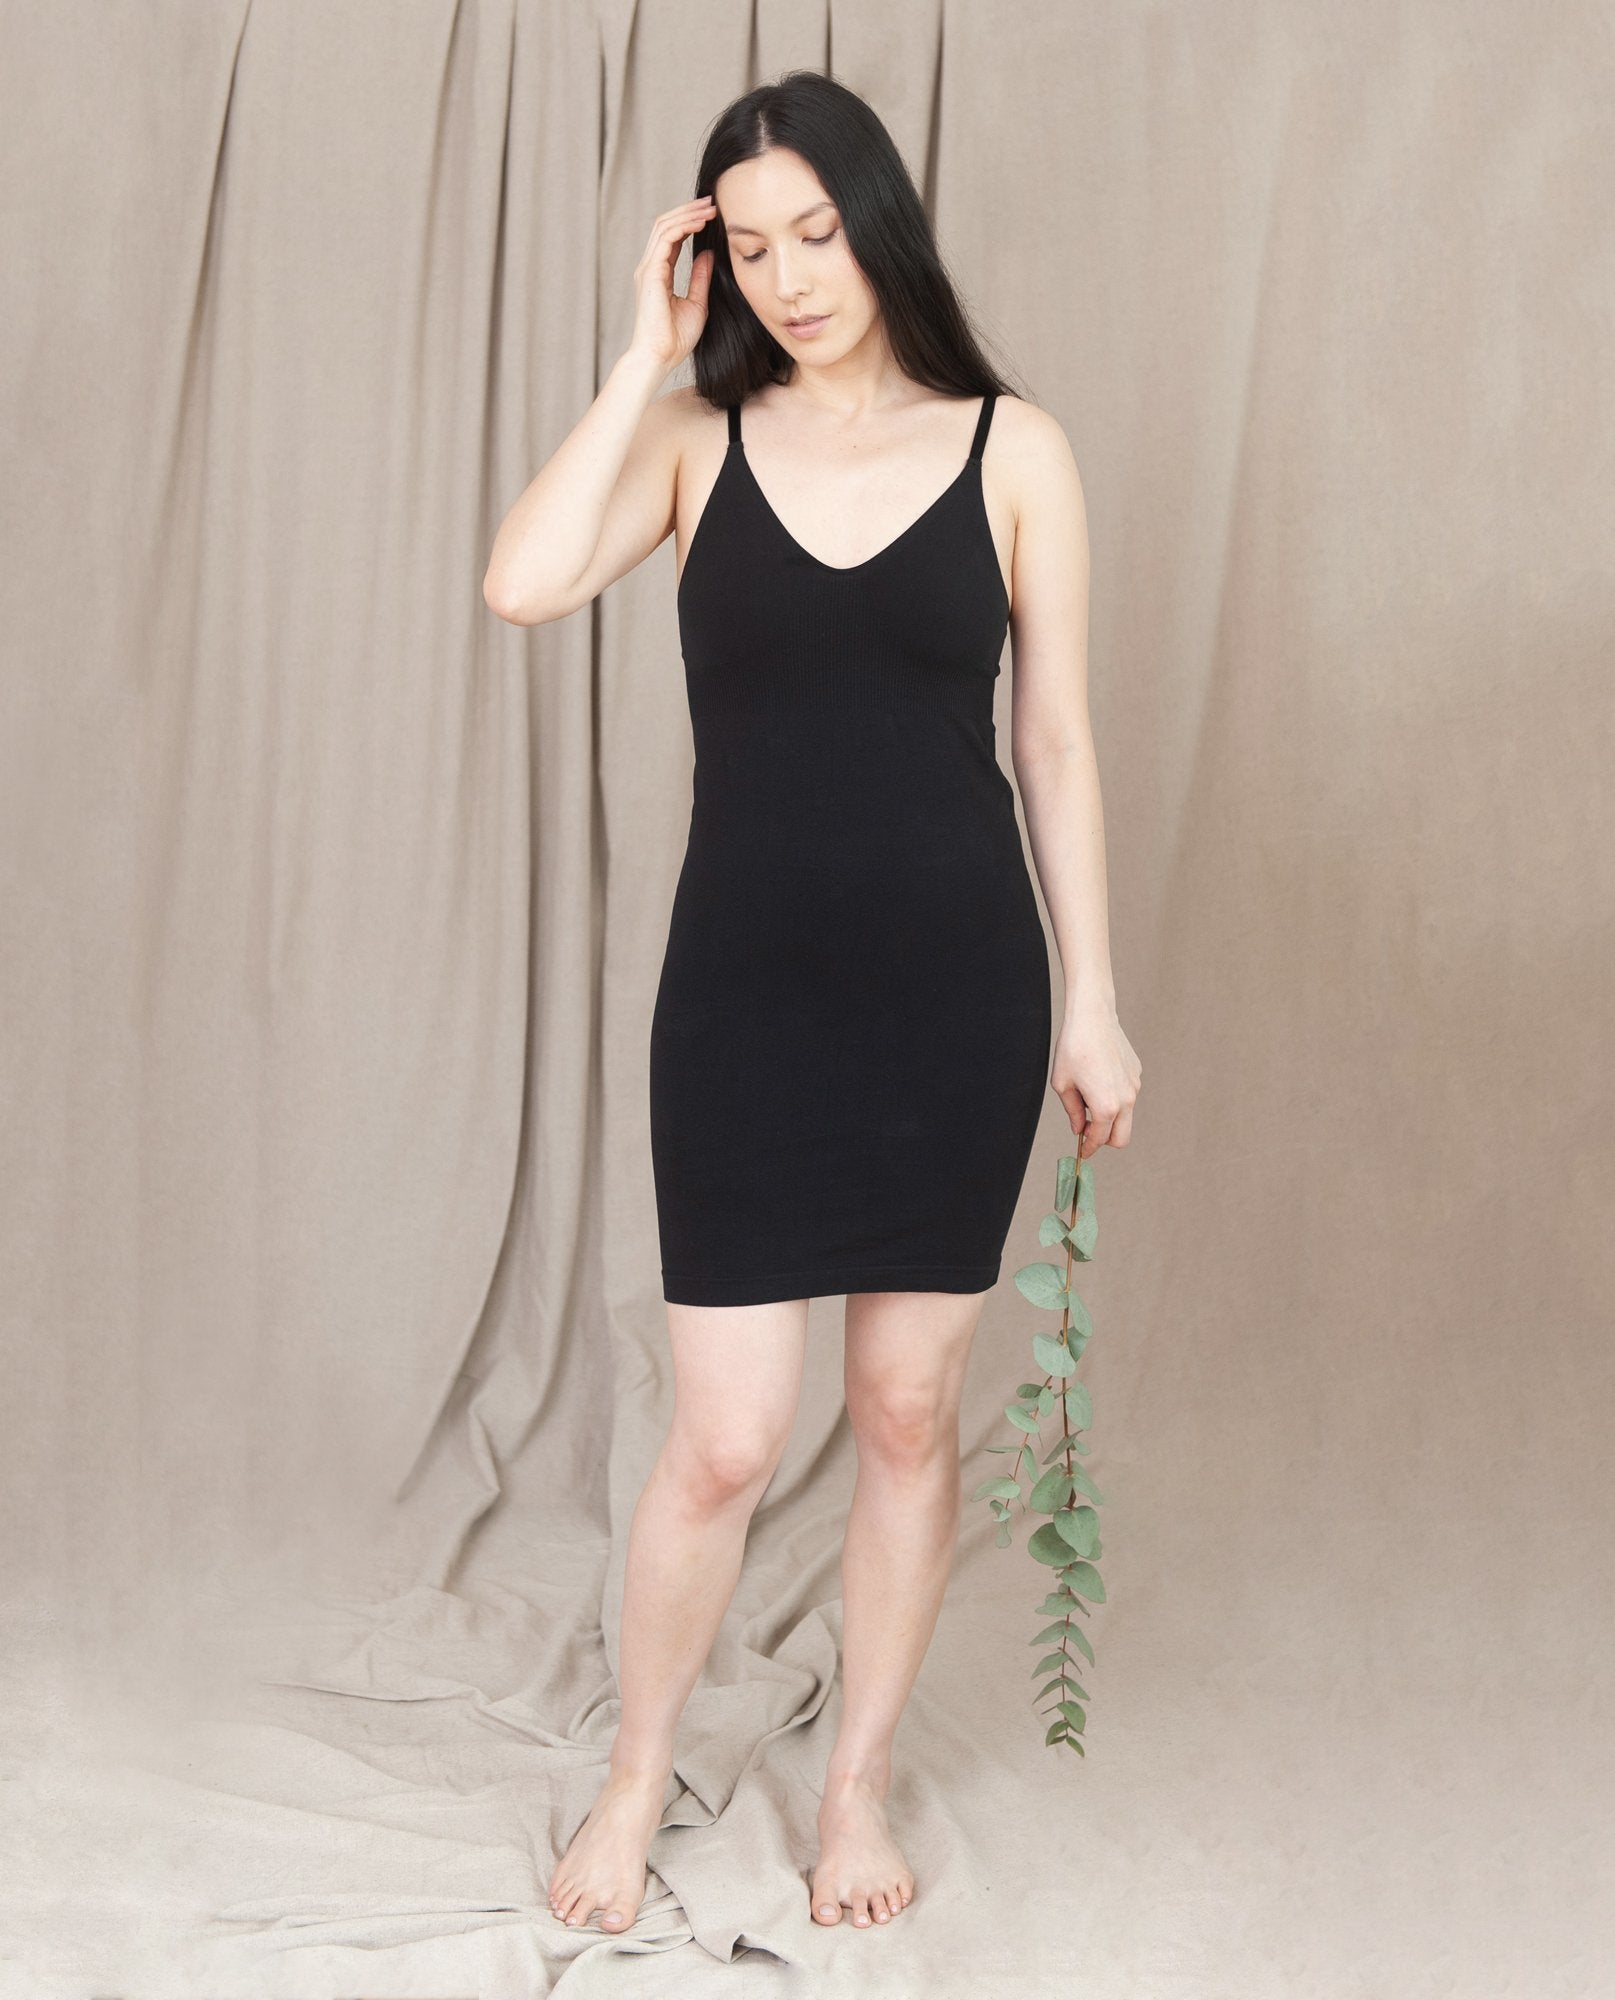 LANA Organic Cotton Slip In Black-beaumontorganic-superbulky